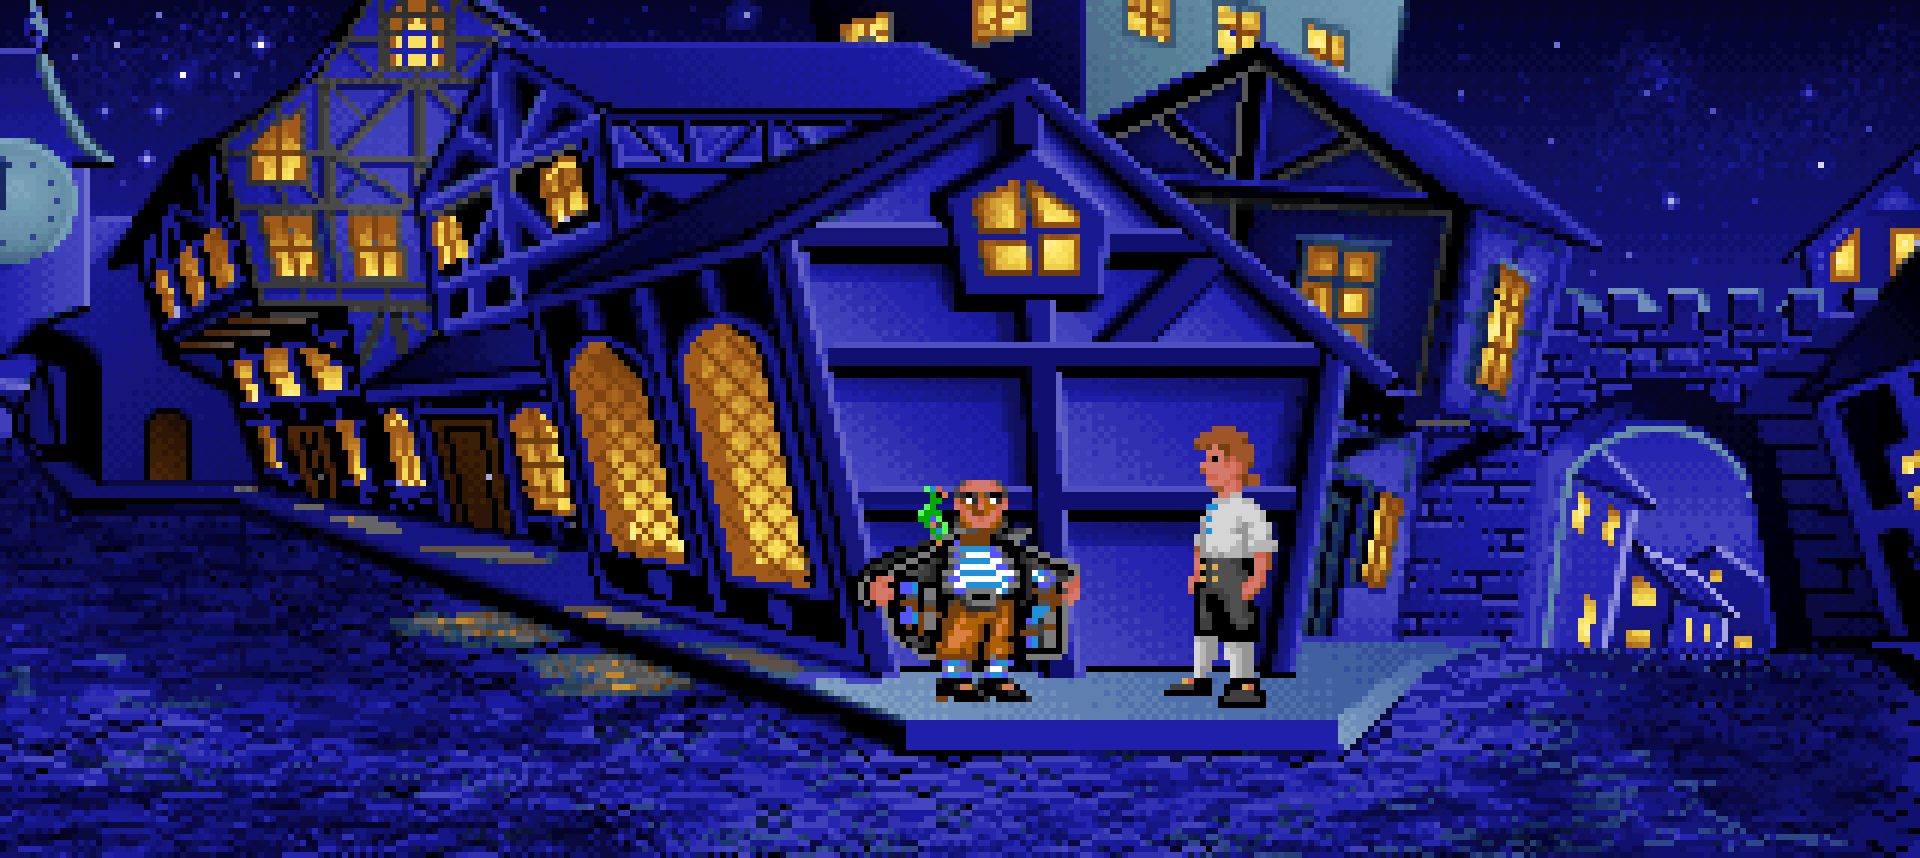 Wanna buy a map in Monkey Island? This flasher is pretty good. Moby Games, thanks again.